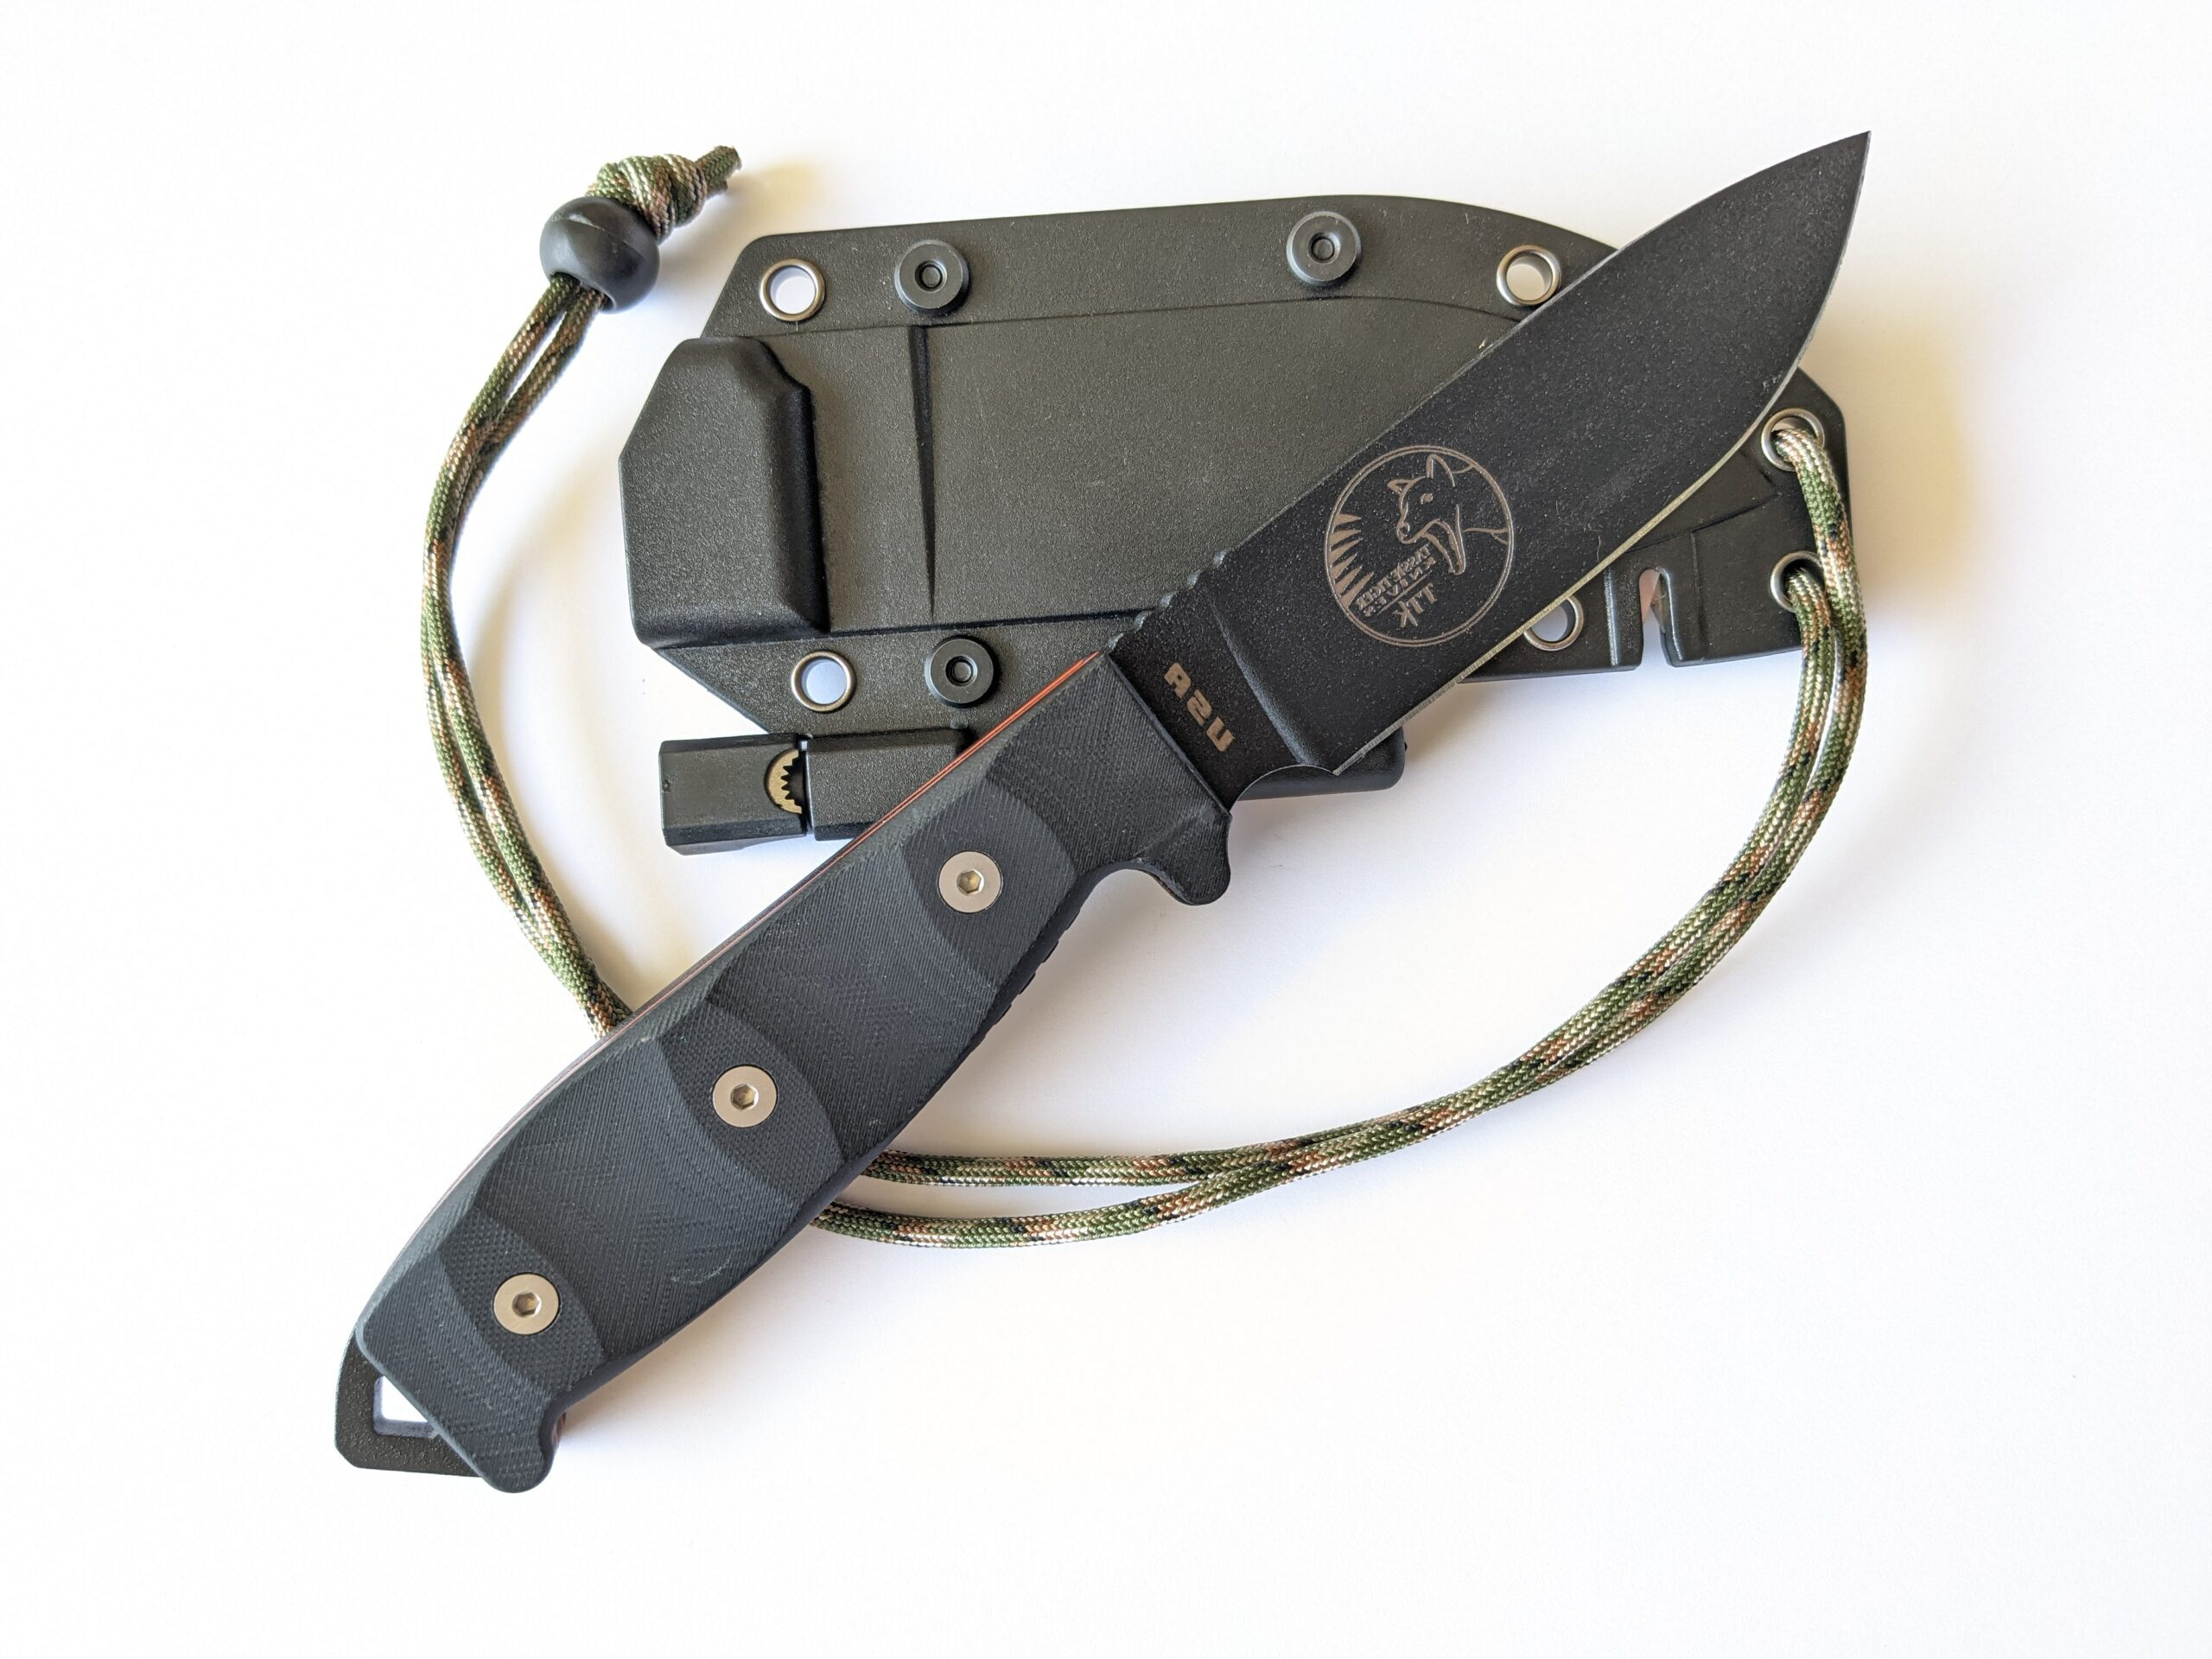 Fixed Blade Survival Knife, Micrata Handle & Orange G10 Inlays + Sheath